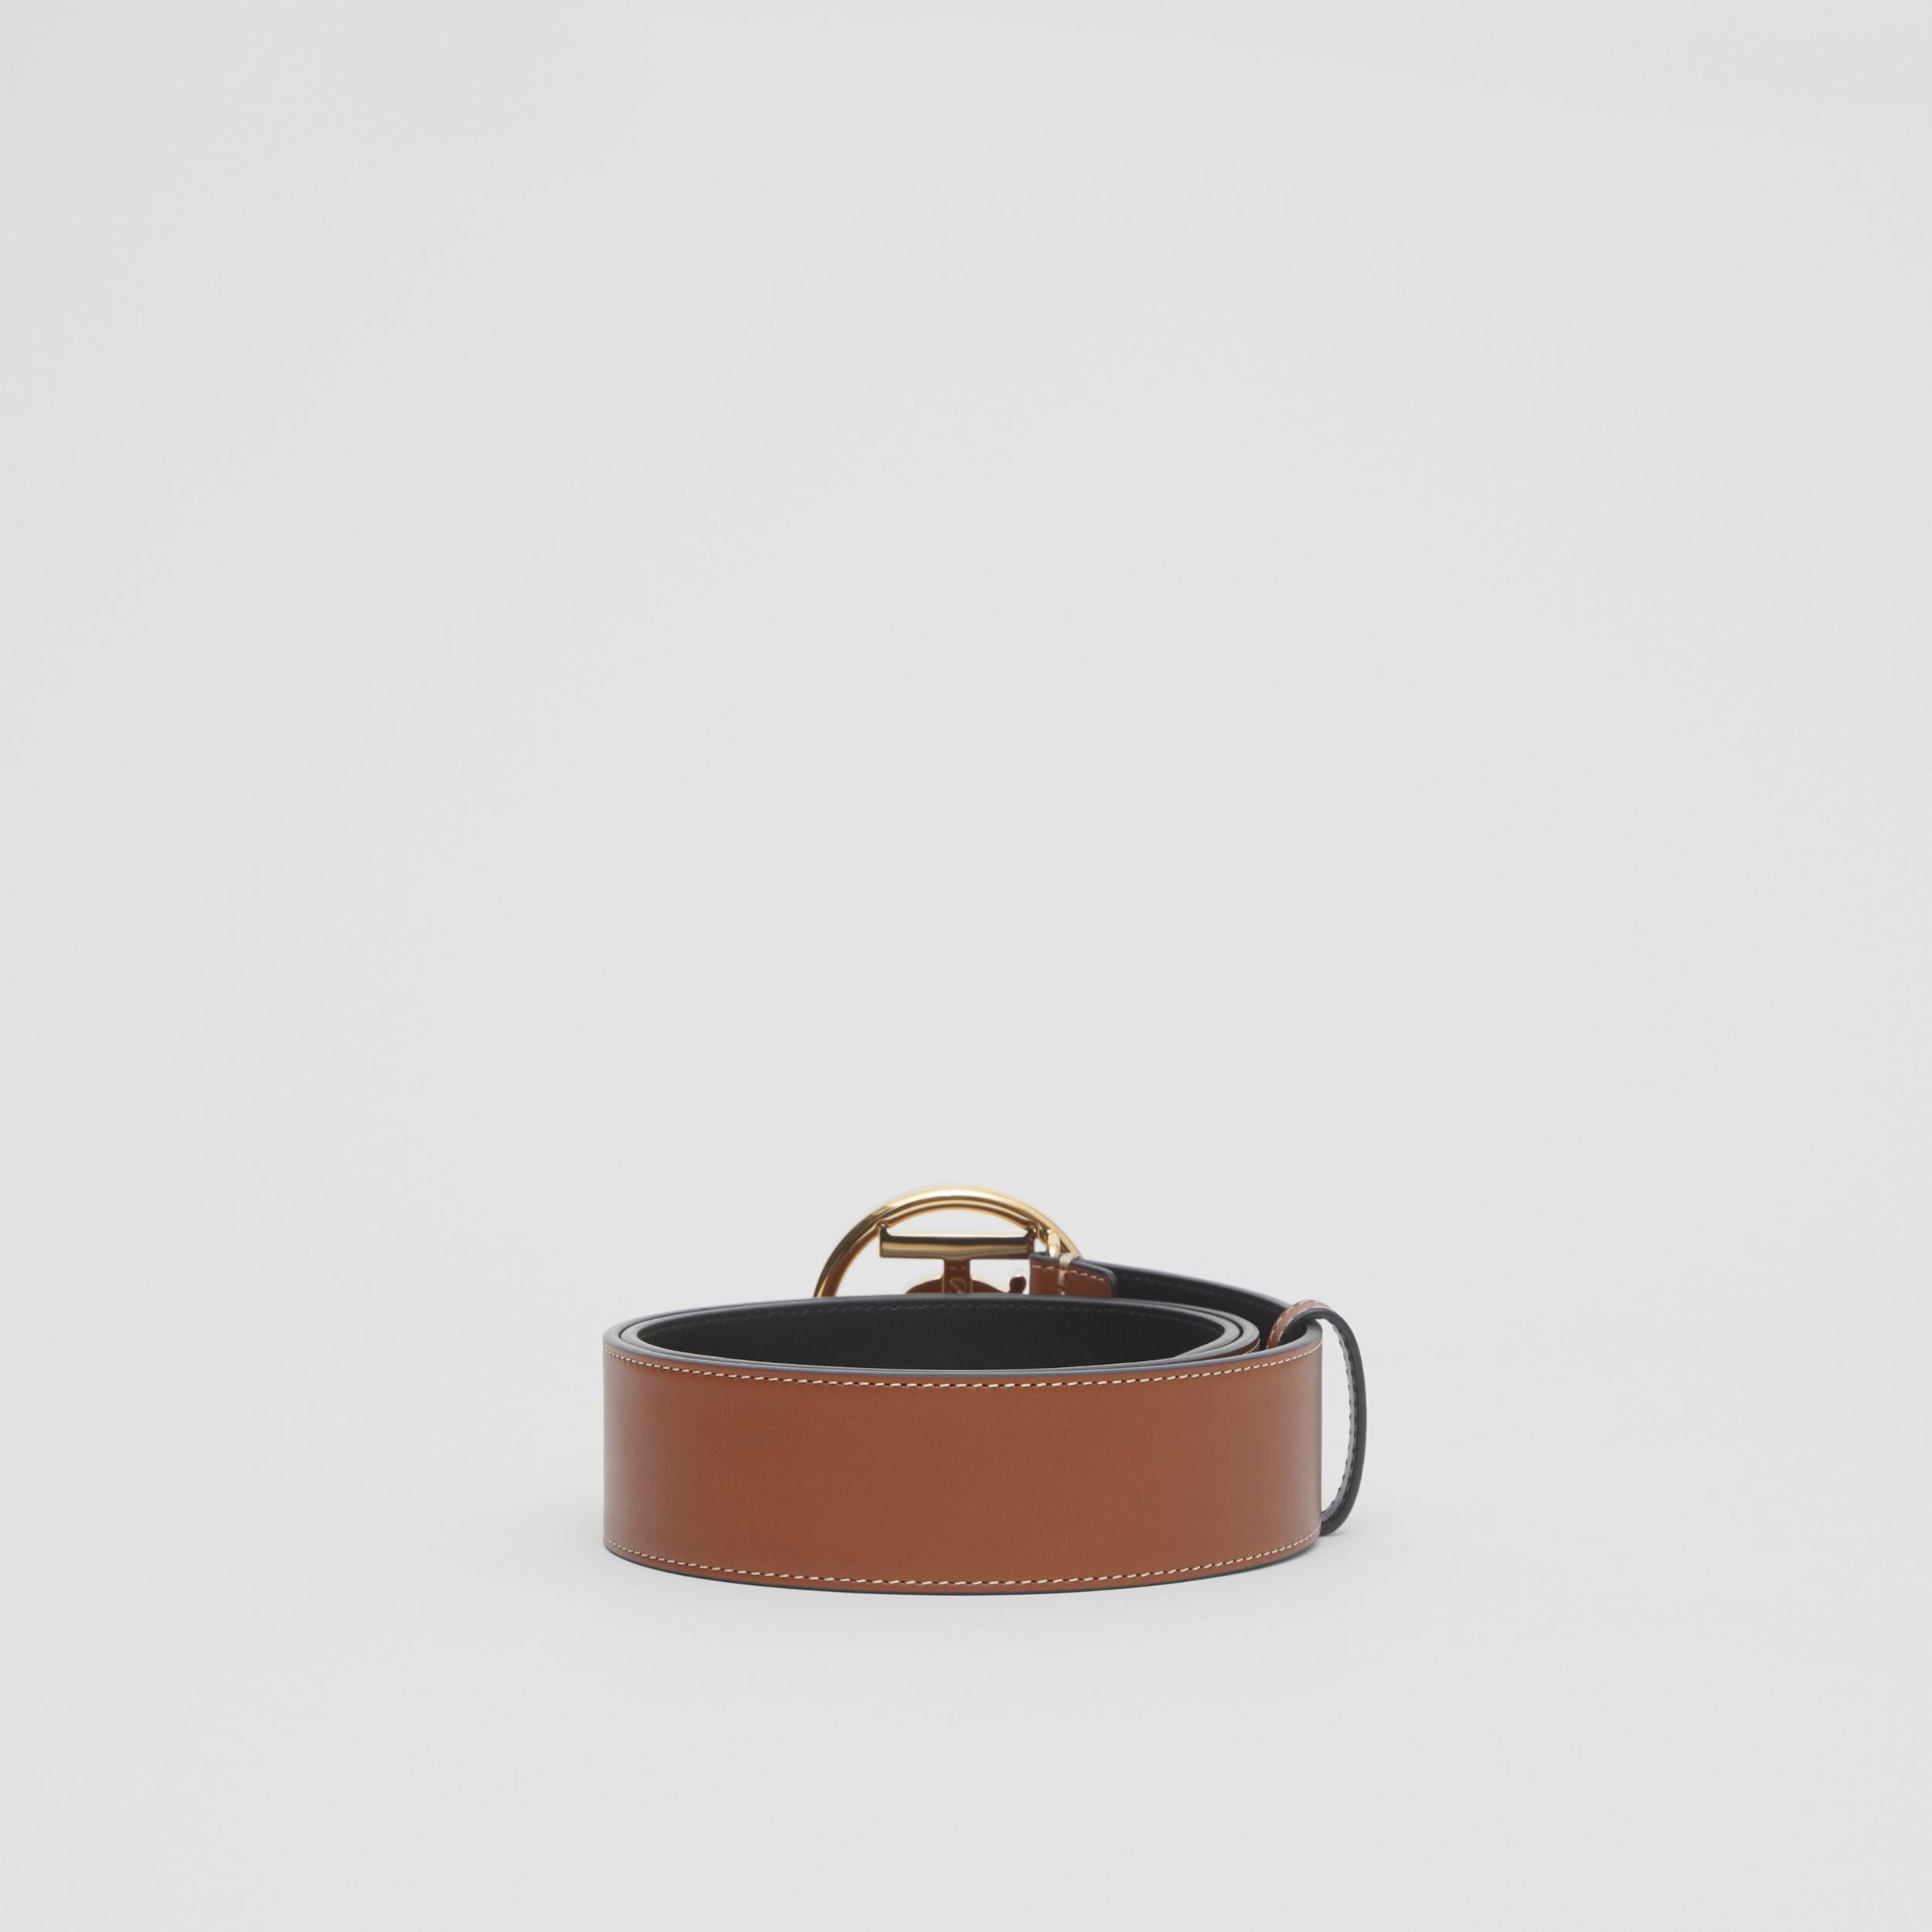 Monogram Motif Topstitched Leather Belt in Tan - Men | Burberry - 4